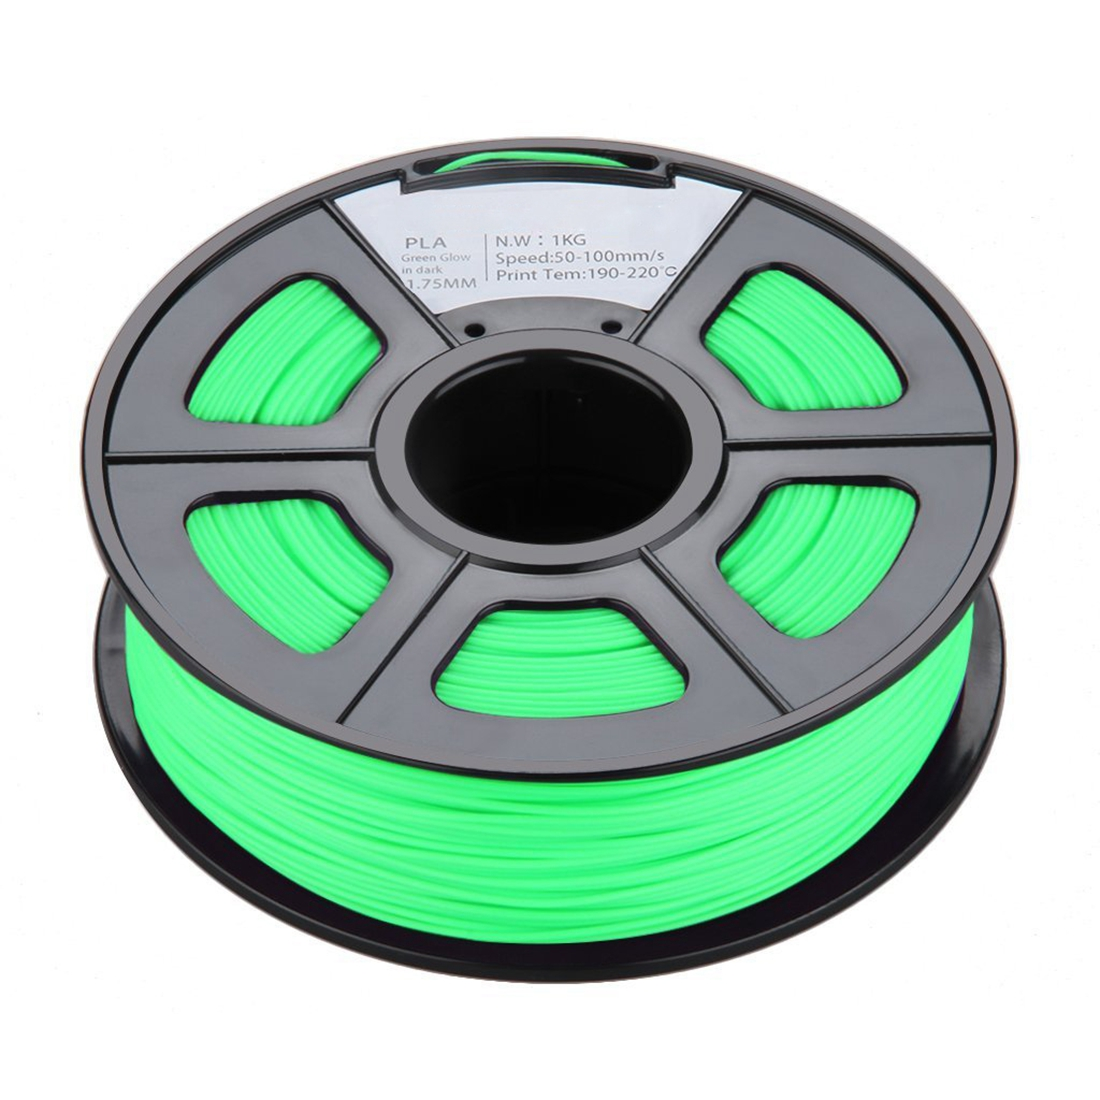 PPYY NEW New 1.75mm Glow in the Dark PLA 3D Printer Filament 1kg Spool (2.2 lbs) Dimensional Accuracy +/ 0.02mm